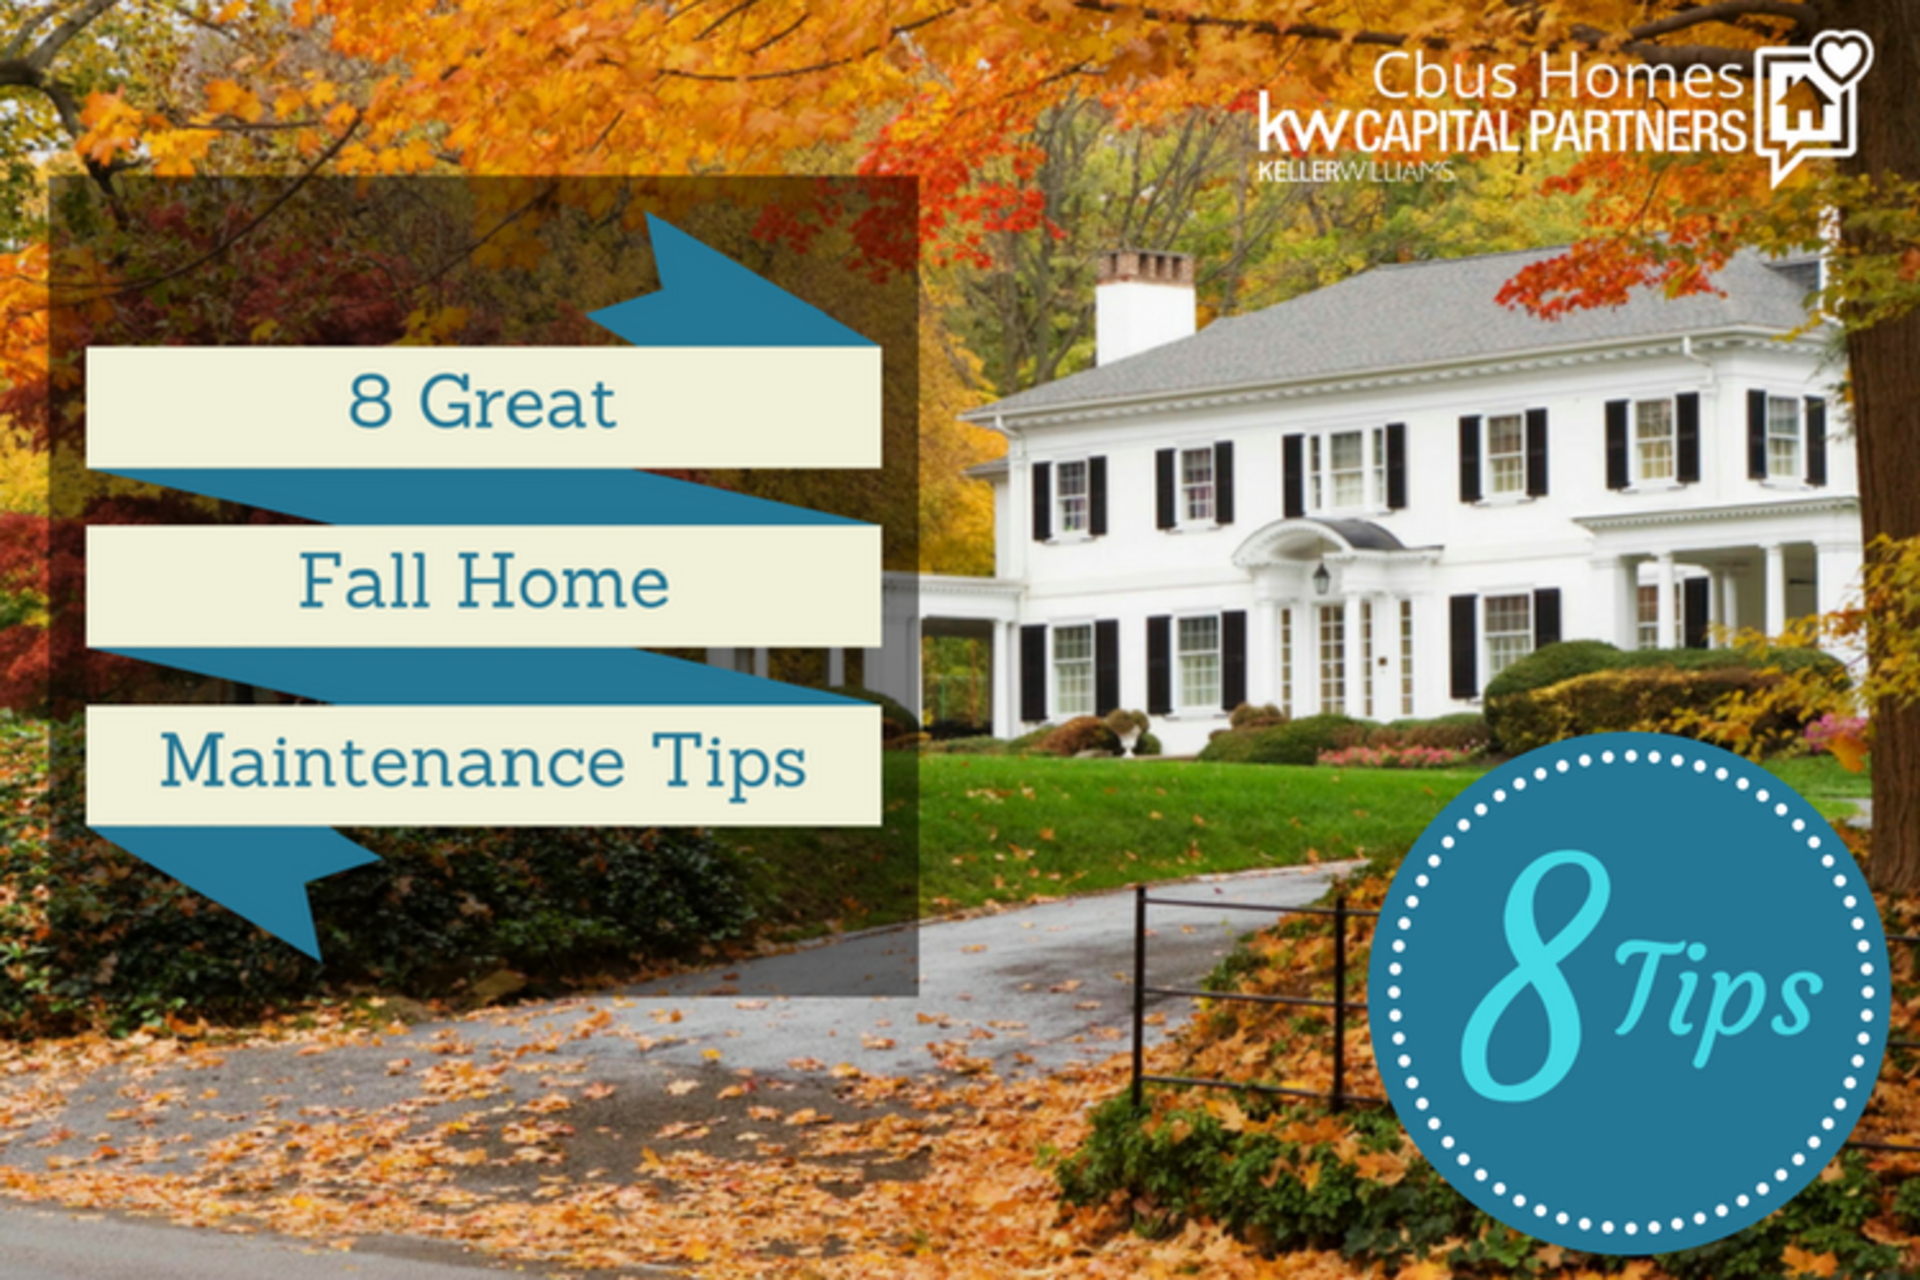 8 Great Tips for Fall Home Maintenance in Columbus, Ohio